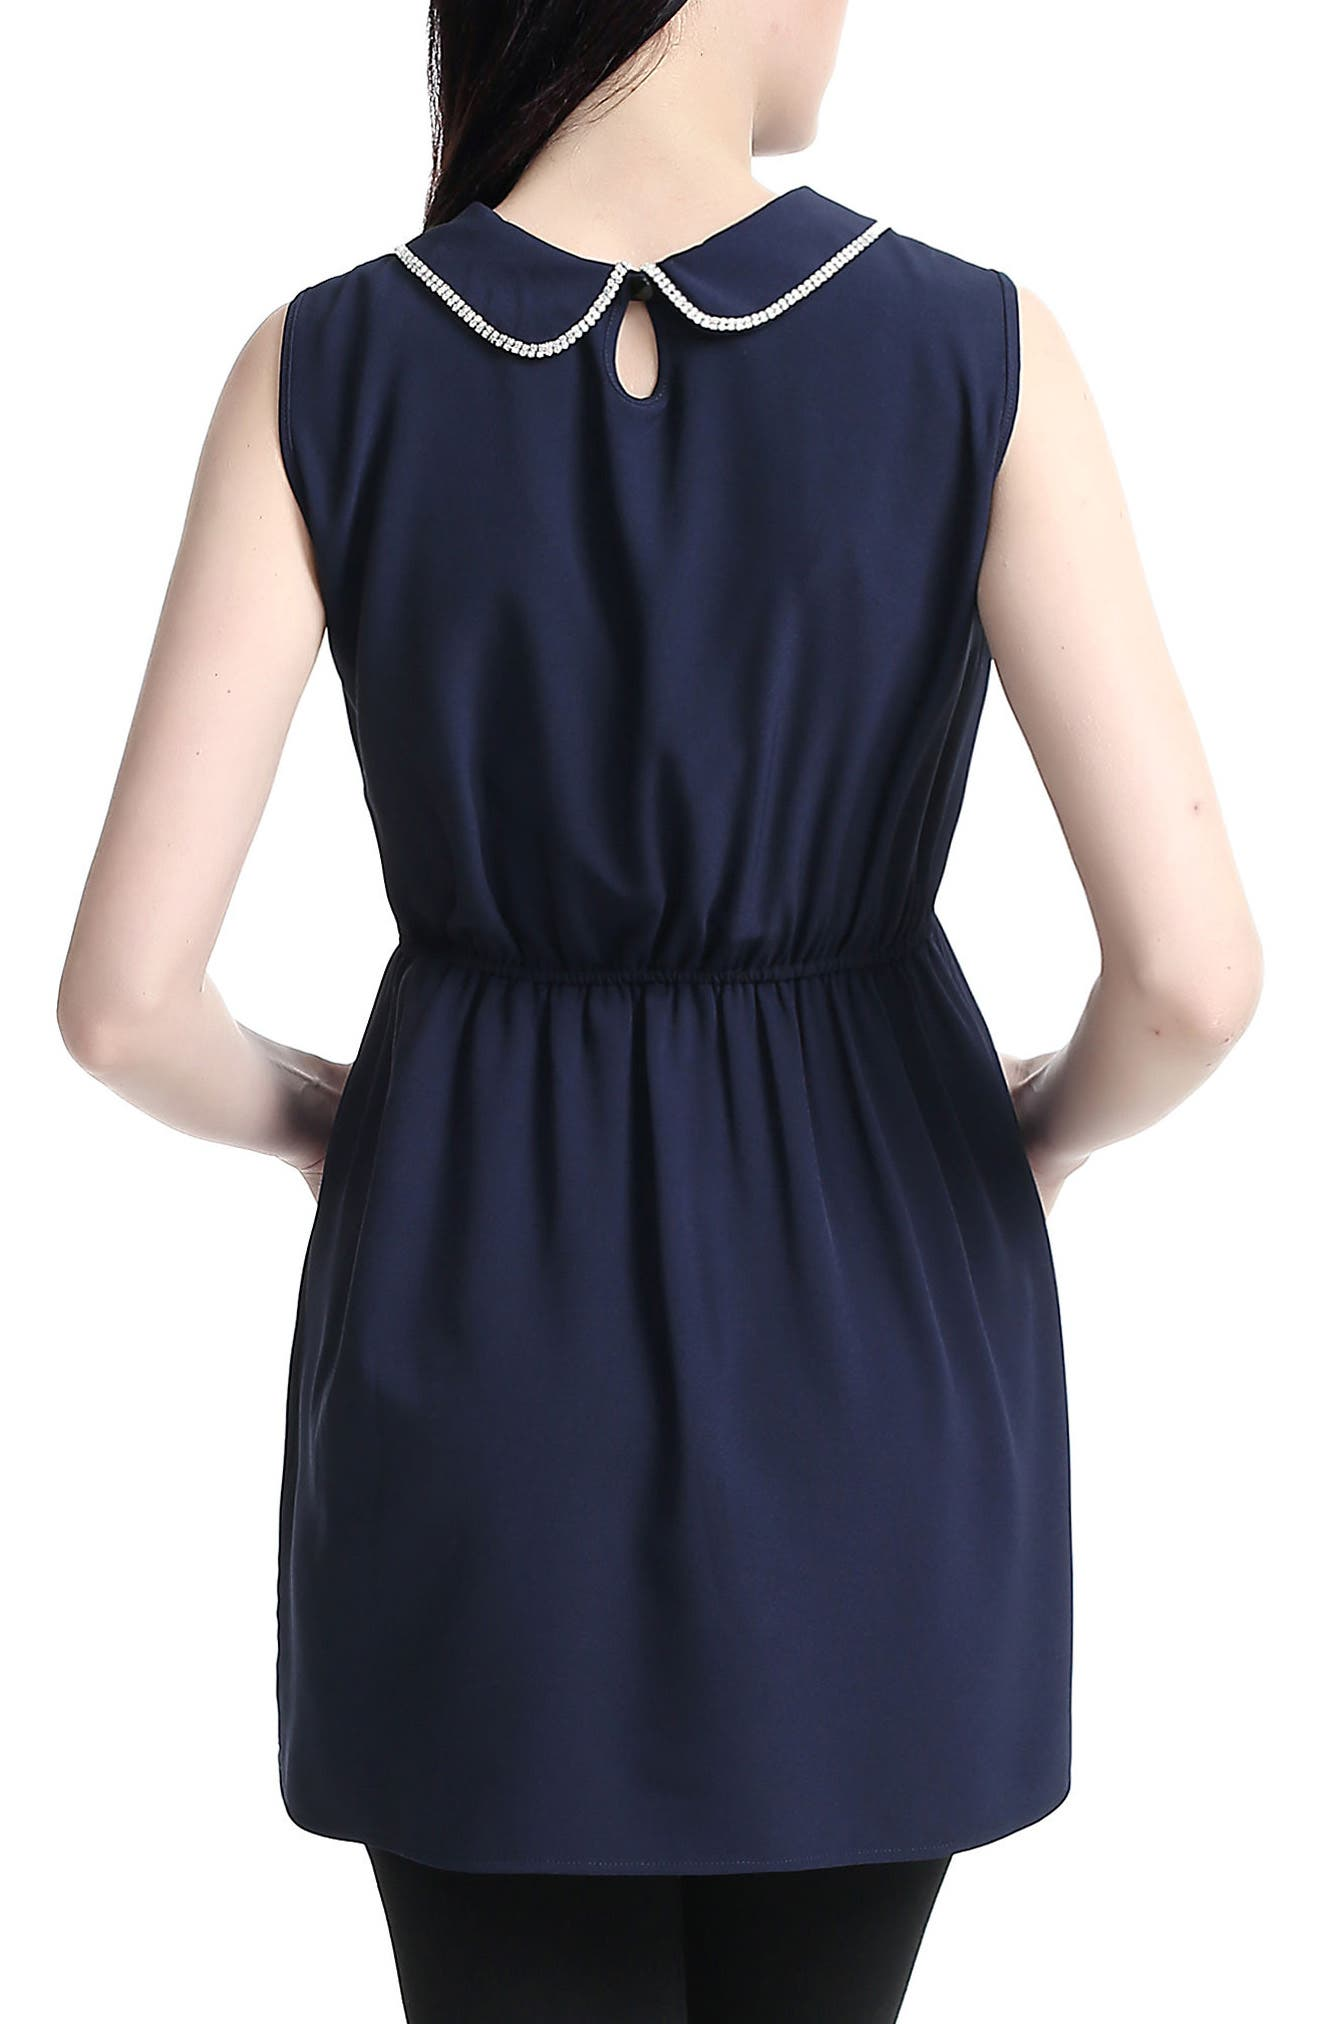 KIMI AND KAI,                             'Callie' Crystal Embellished Peter Pan Collar Sleeveless Maternity Blouse,                             Alternate thumbnail 4, color,                             NAVY